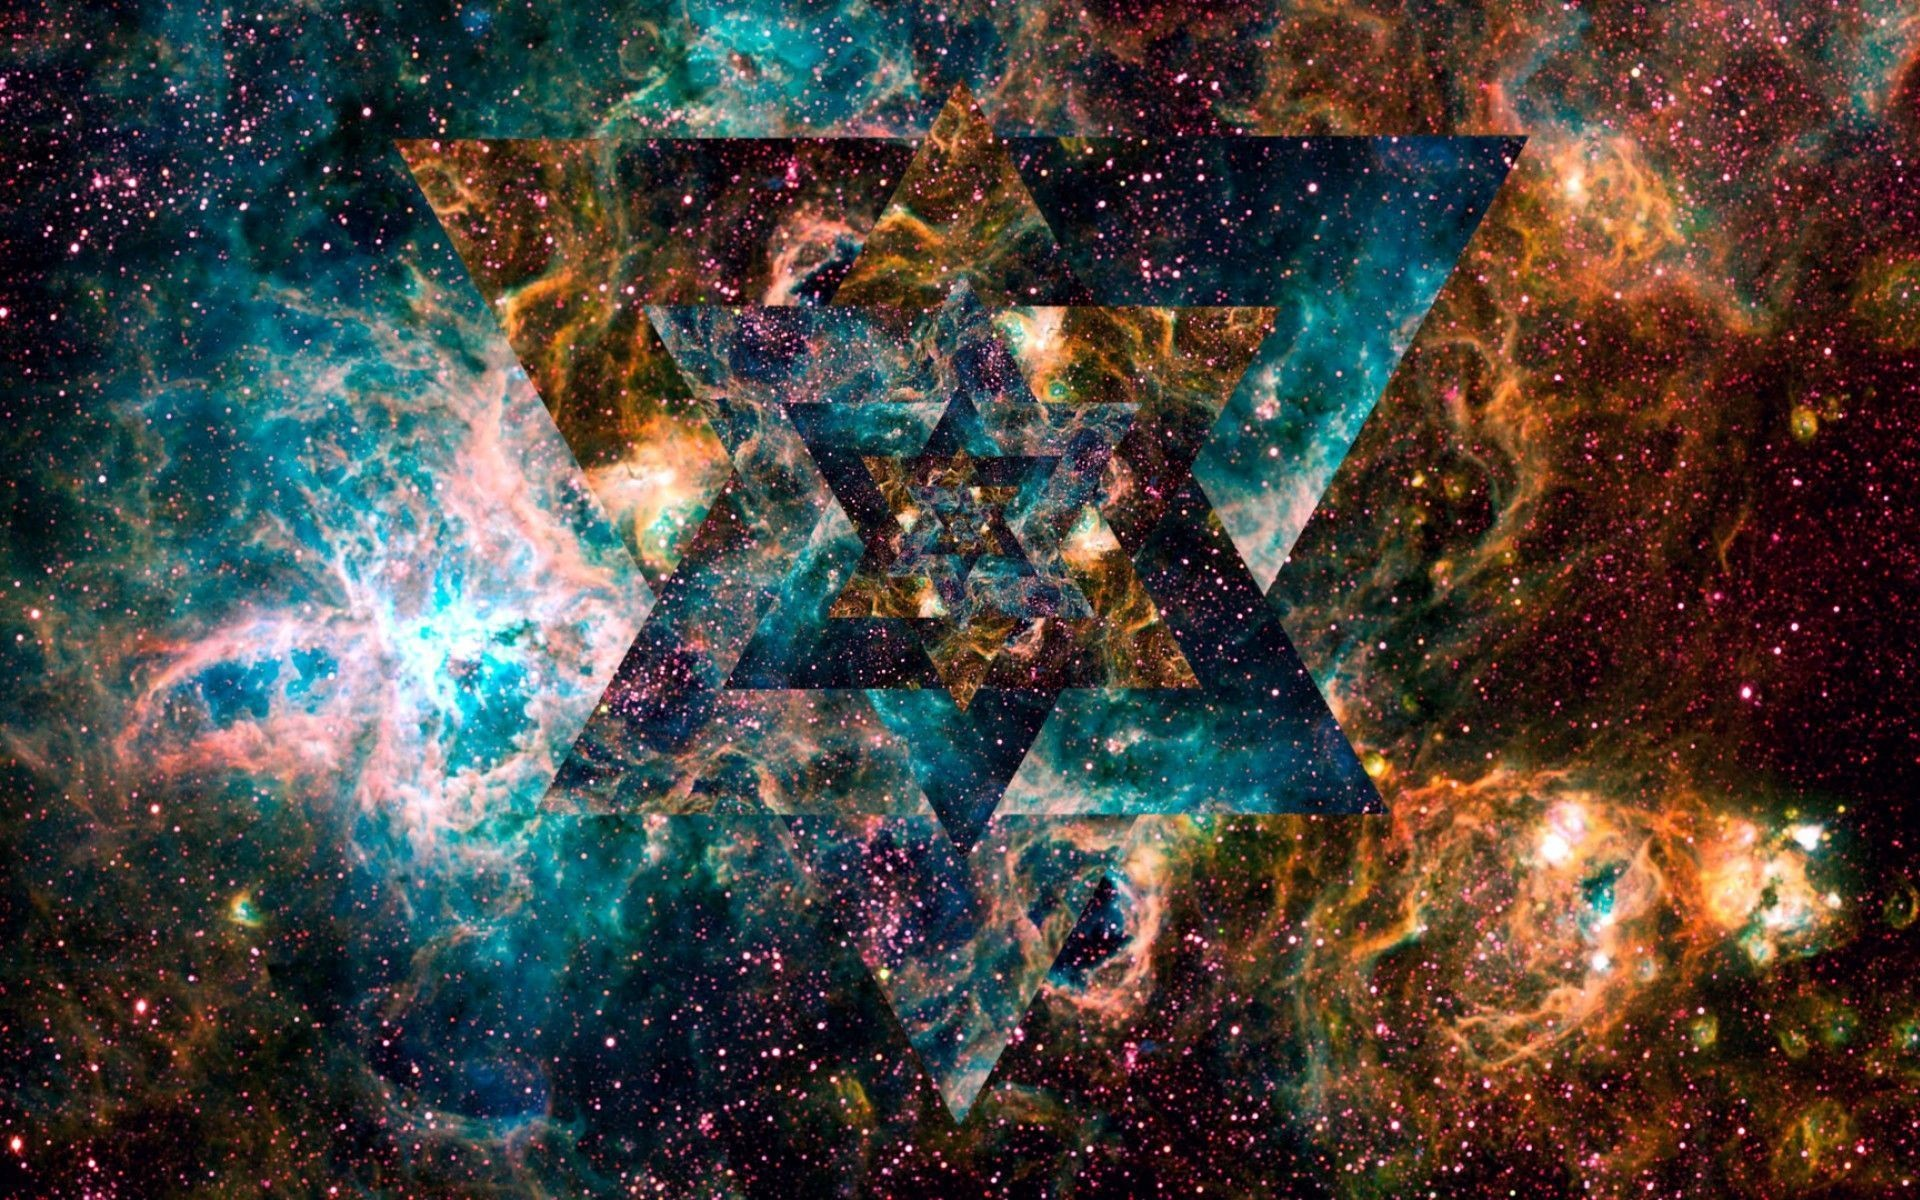 Hd trippy backgrounds 1920x1200 trippy space wallpapers wallpaper 19201080 trippy space backgrounds 43 wallpapers adorable sciox Images